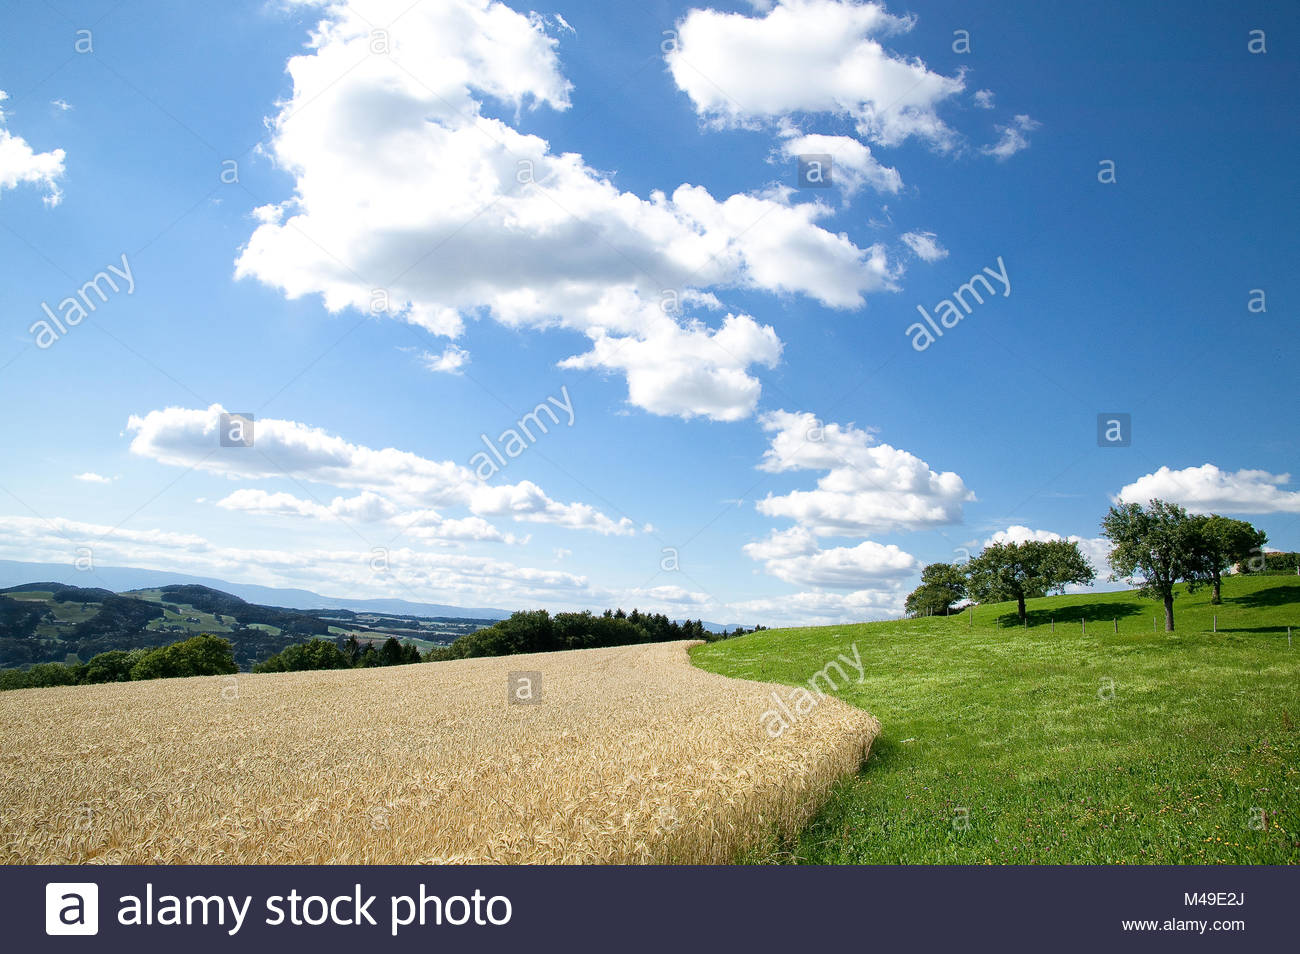 windows xp wallpaper stock photos & windows xp wallpaper stock